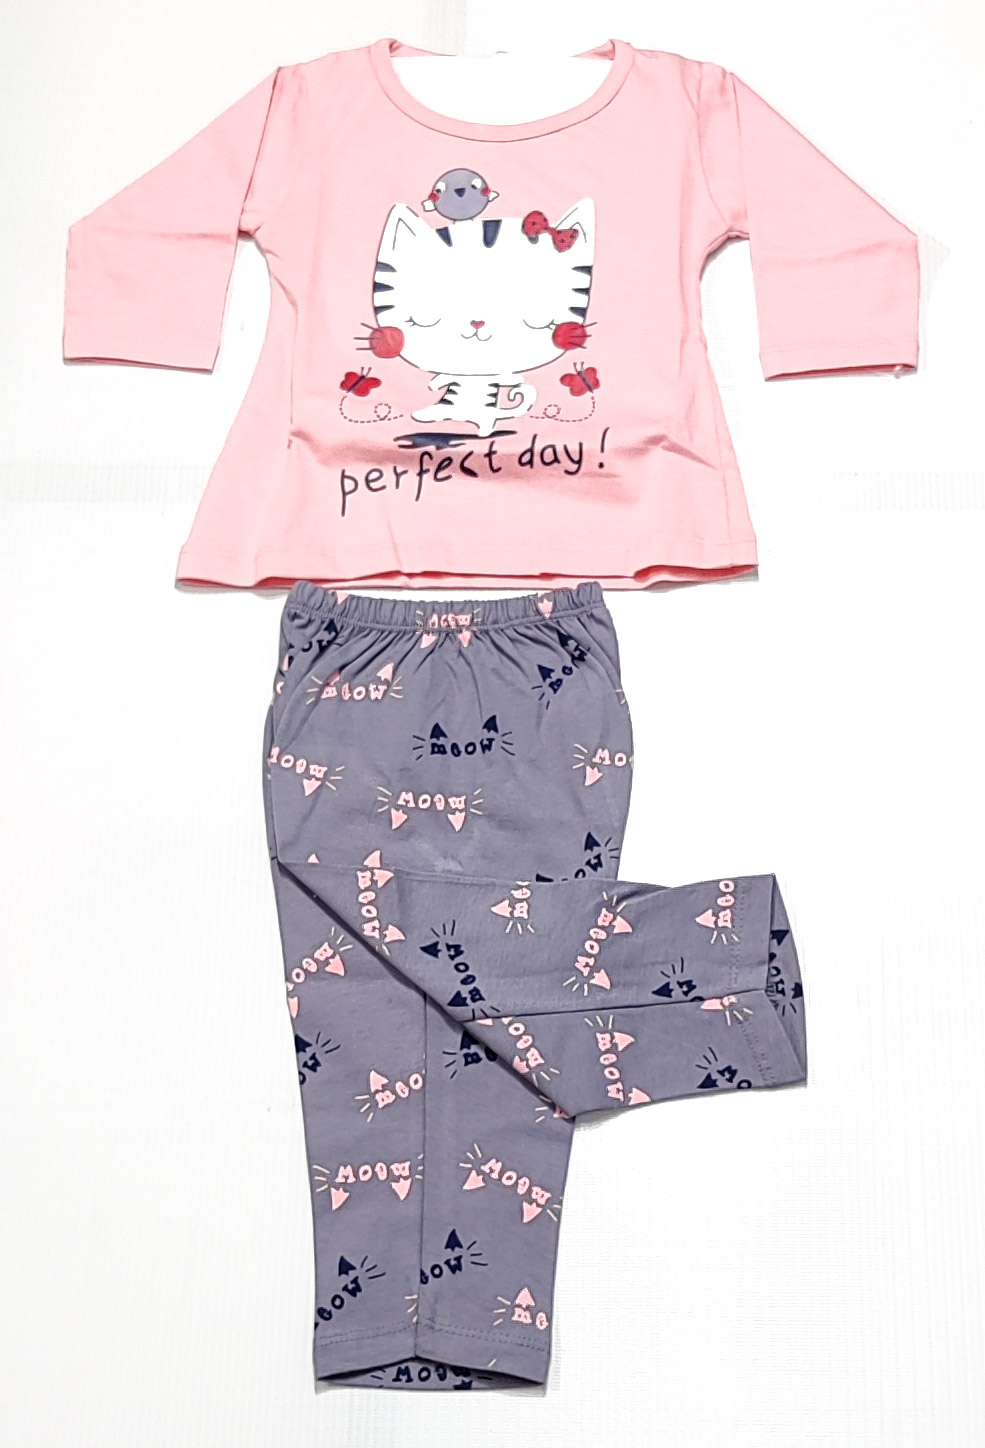 AAAKAR | Girl's Stylish Graphic Printed Cotton Blend NightSuit Set